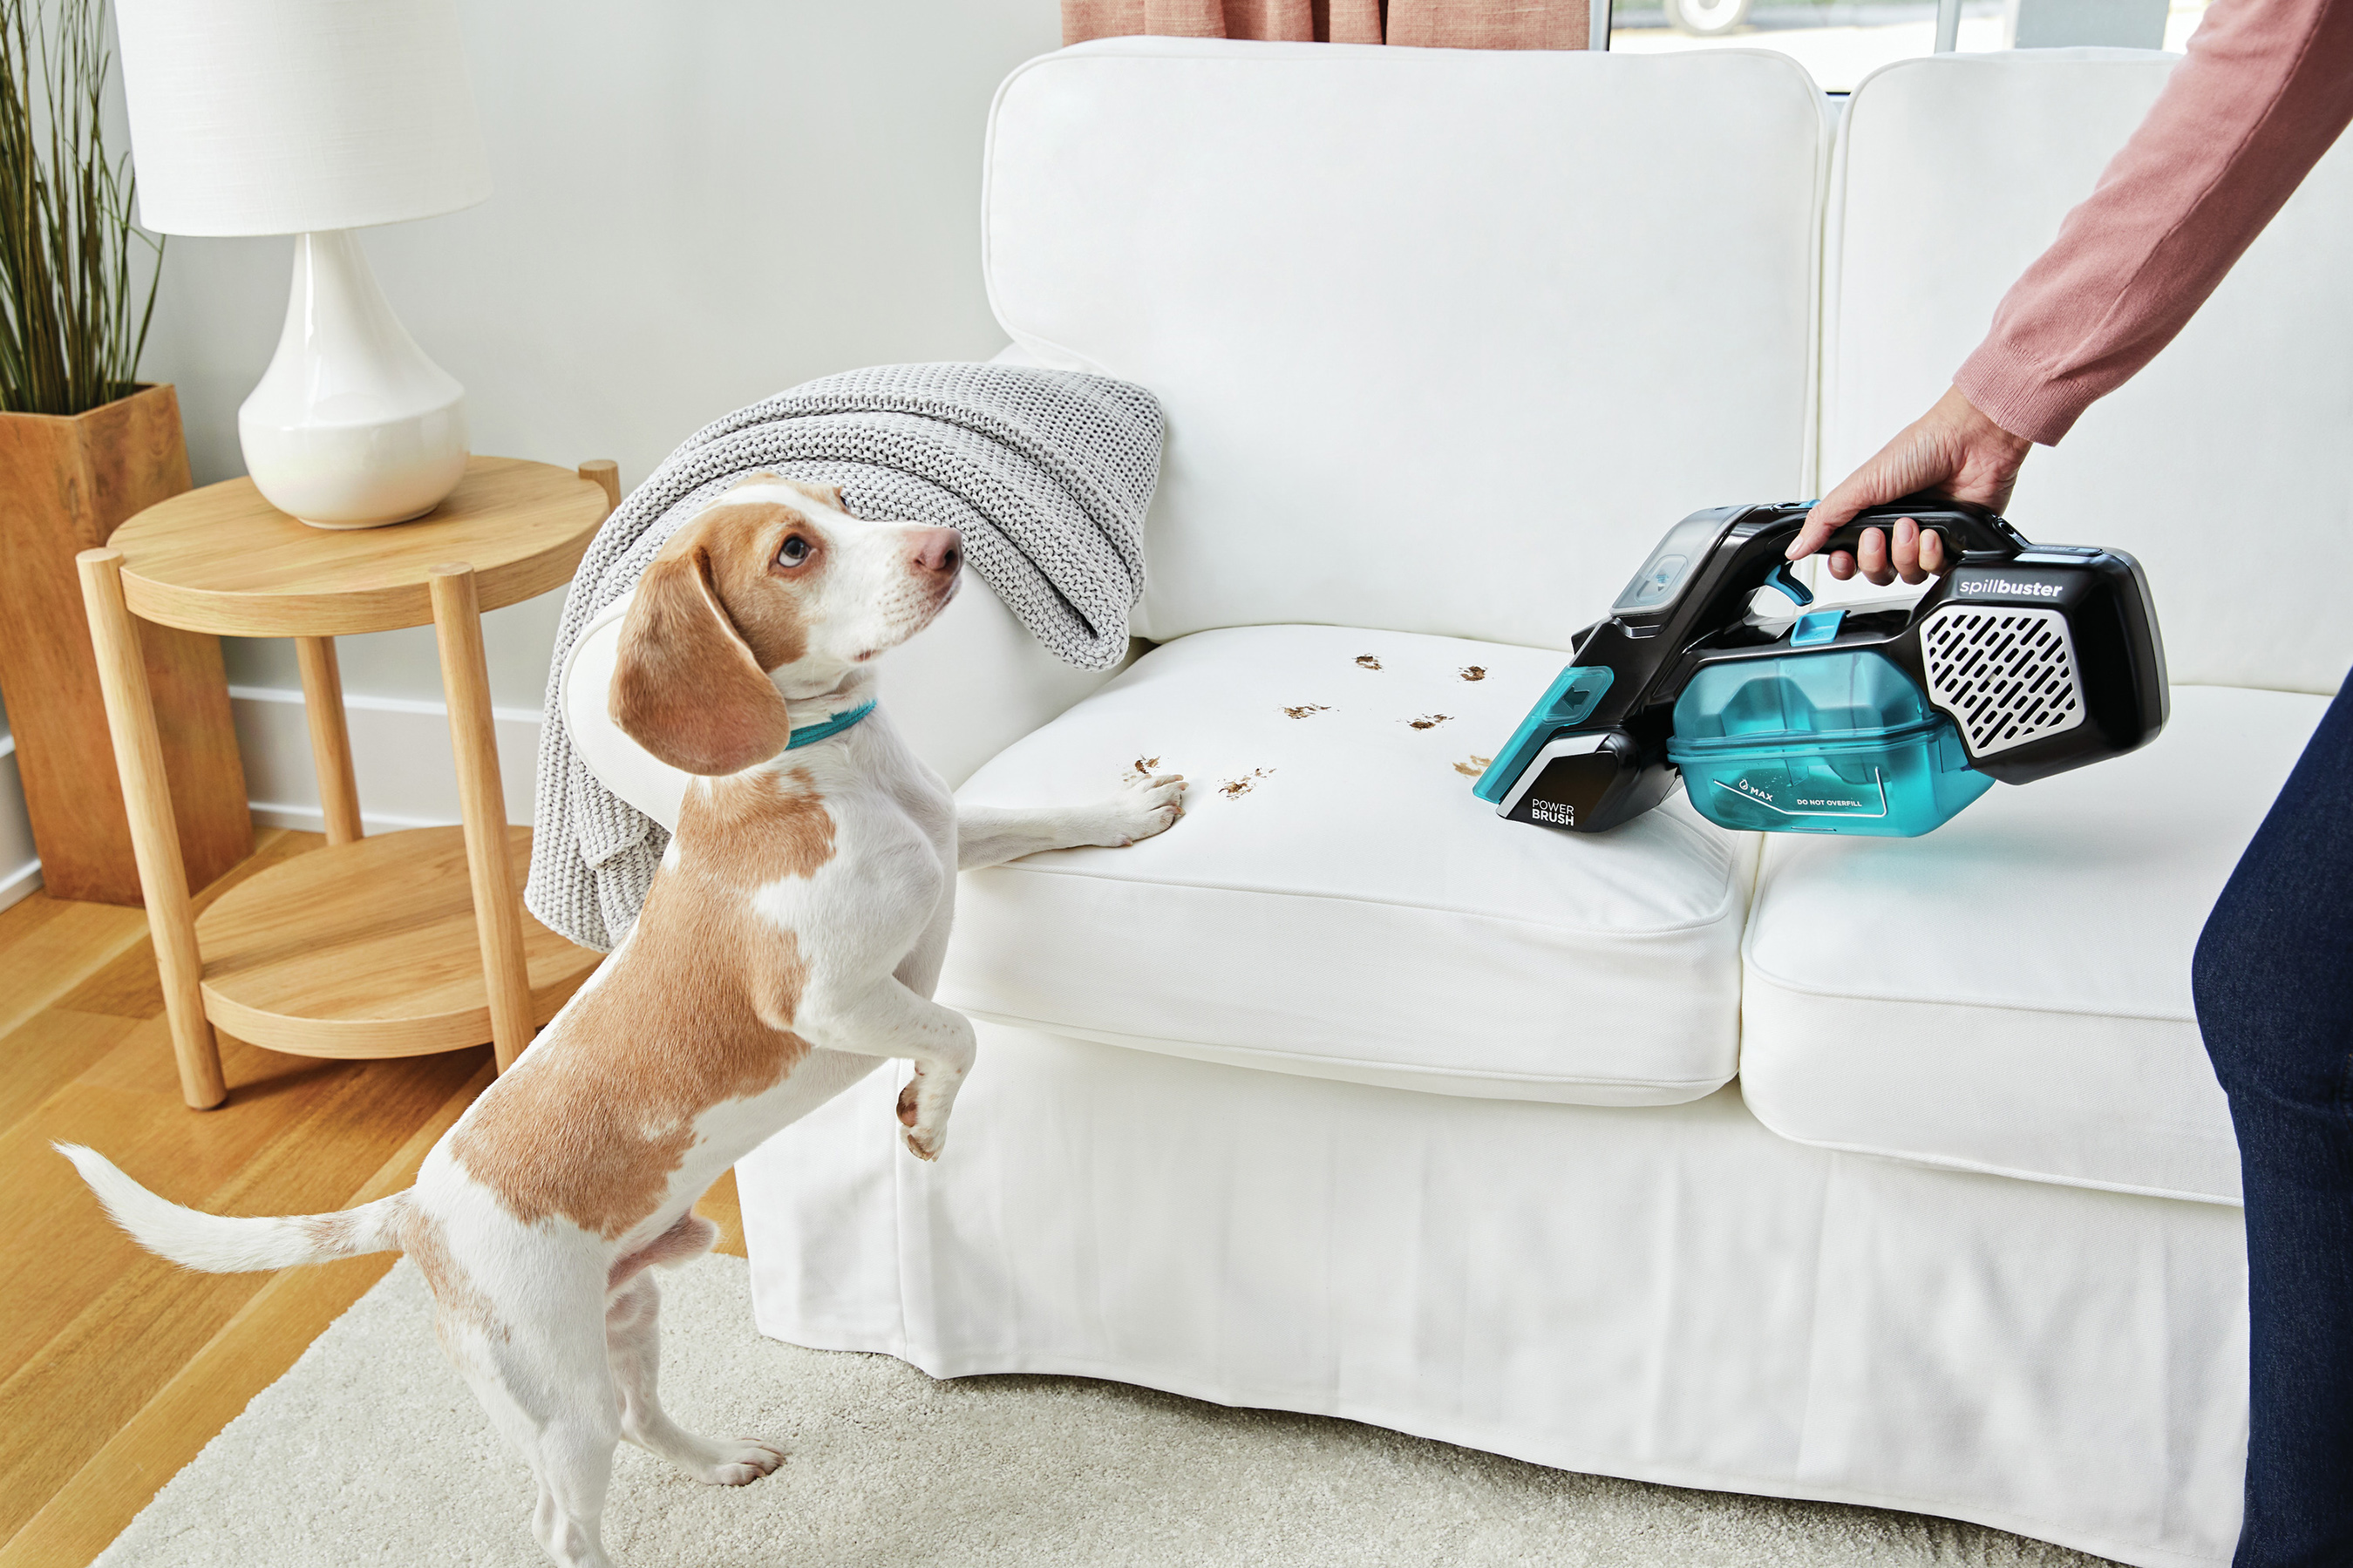 Cleaning convenience for pet messes